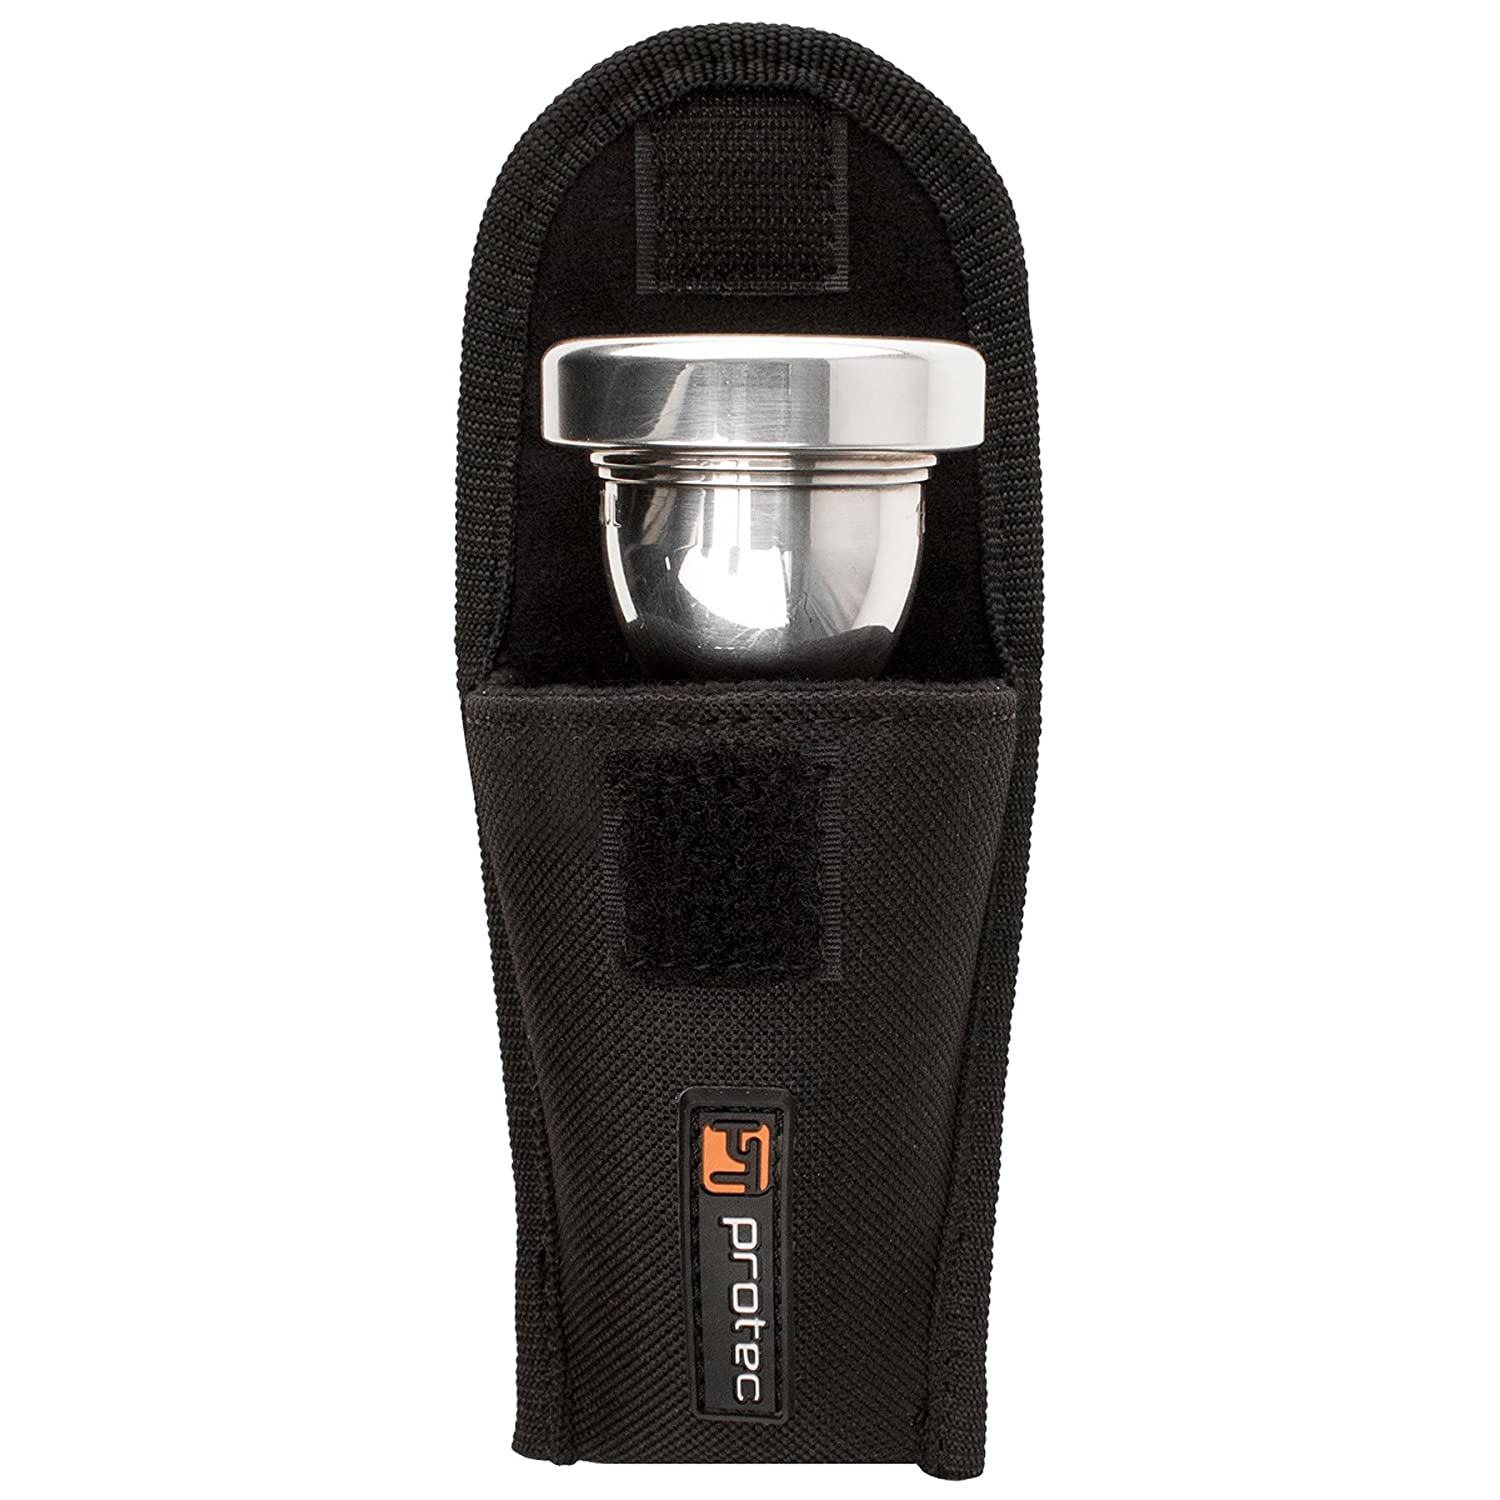 Protec Tuba Mouthpiece Padded Nylon Pouch with Secure Hook and Loop Closure, Model A205 Pro Tec